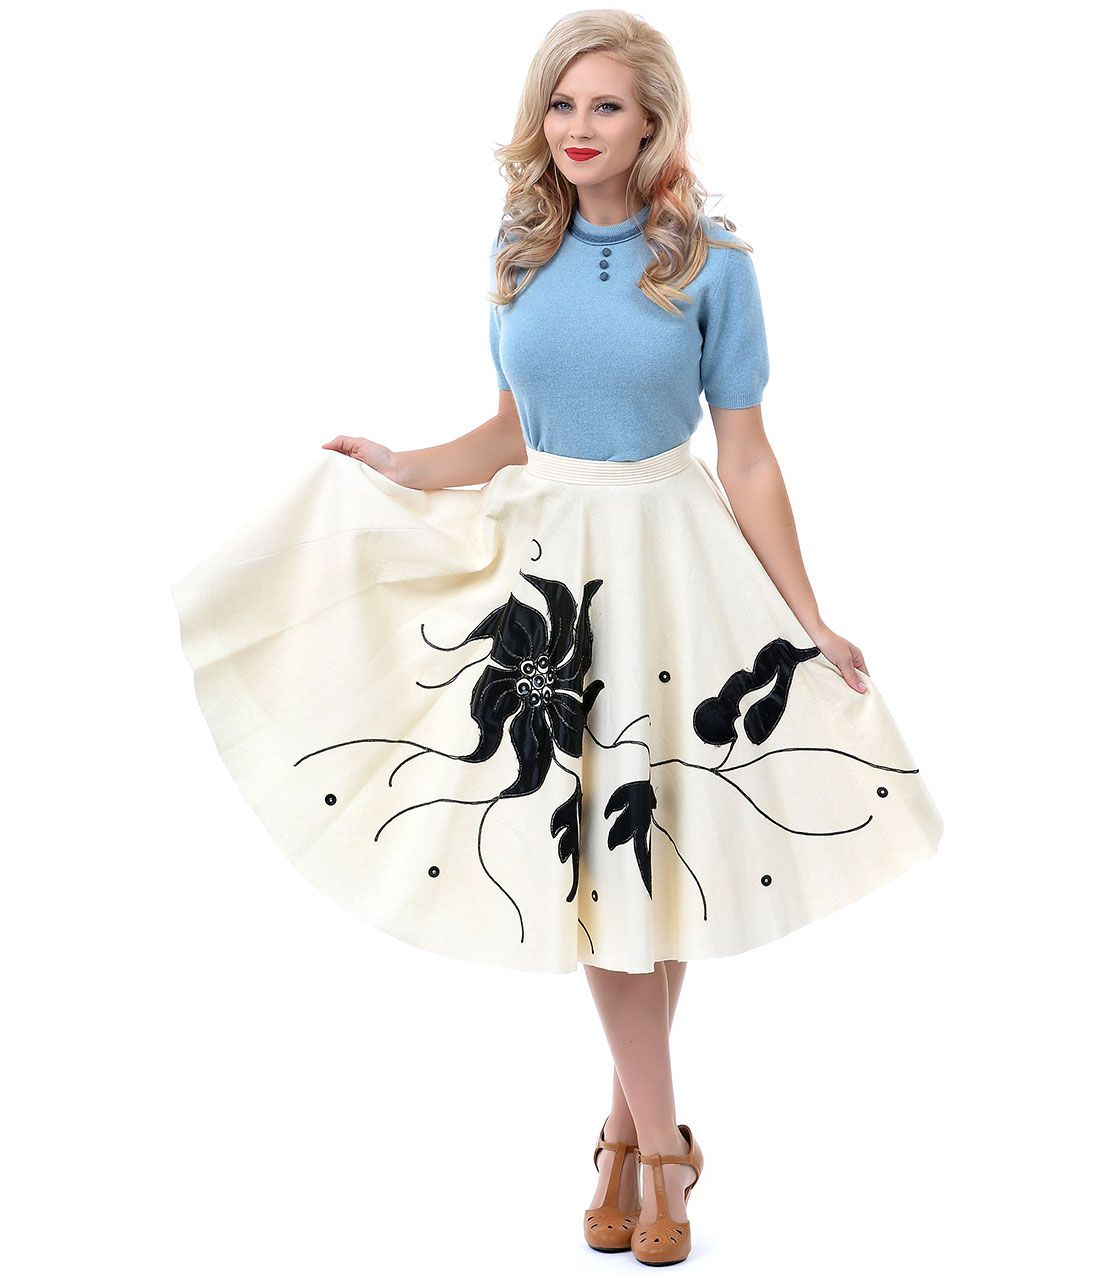 1950s Authentic Vintage Cream & Black Poinsettia Embroidered High Waist Swing Skirt #uniquevintage